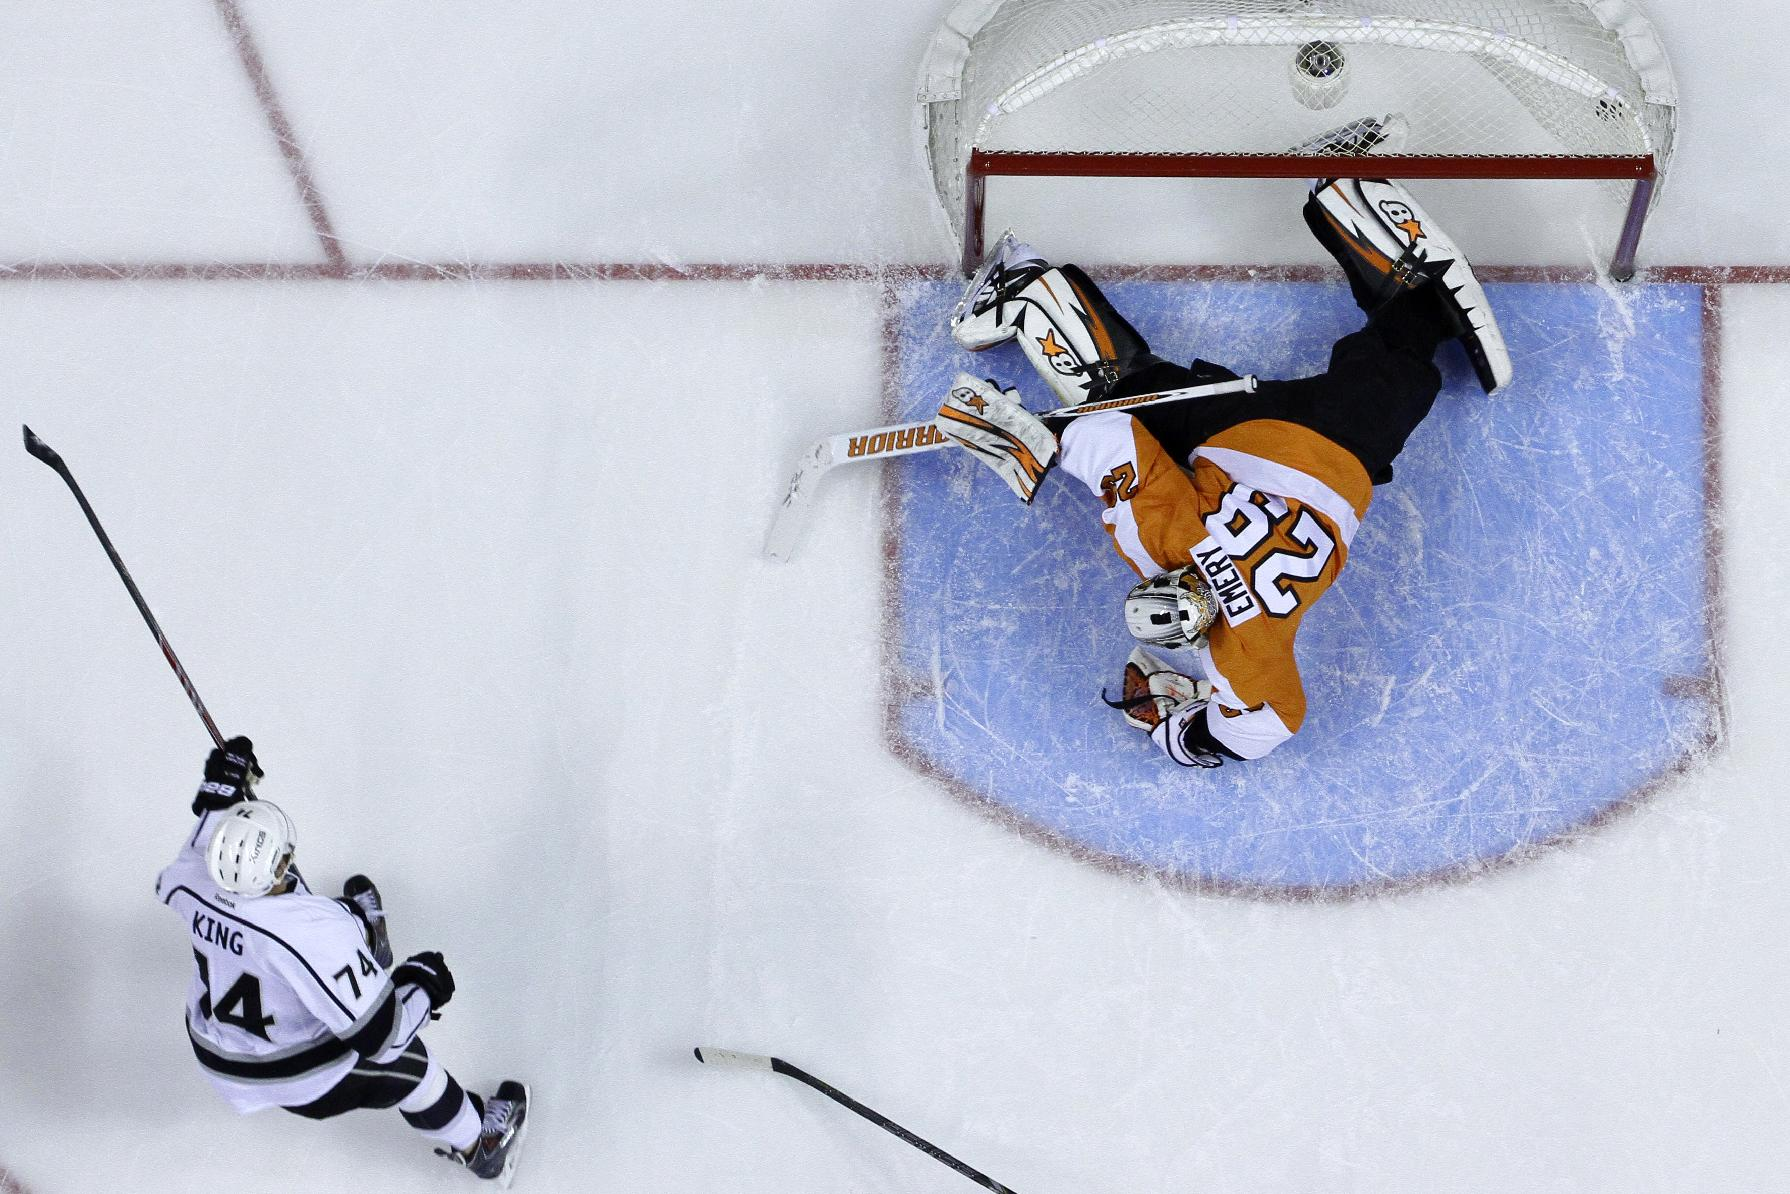 Philadelphia Flyers' Ray Emery, right, cannot block a goal by Los Angeles Kings' Dwight King during the third period of an NHL hockey game, Monday, March 24, 2014, in Philadelphia. Los Angeles won 3-2